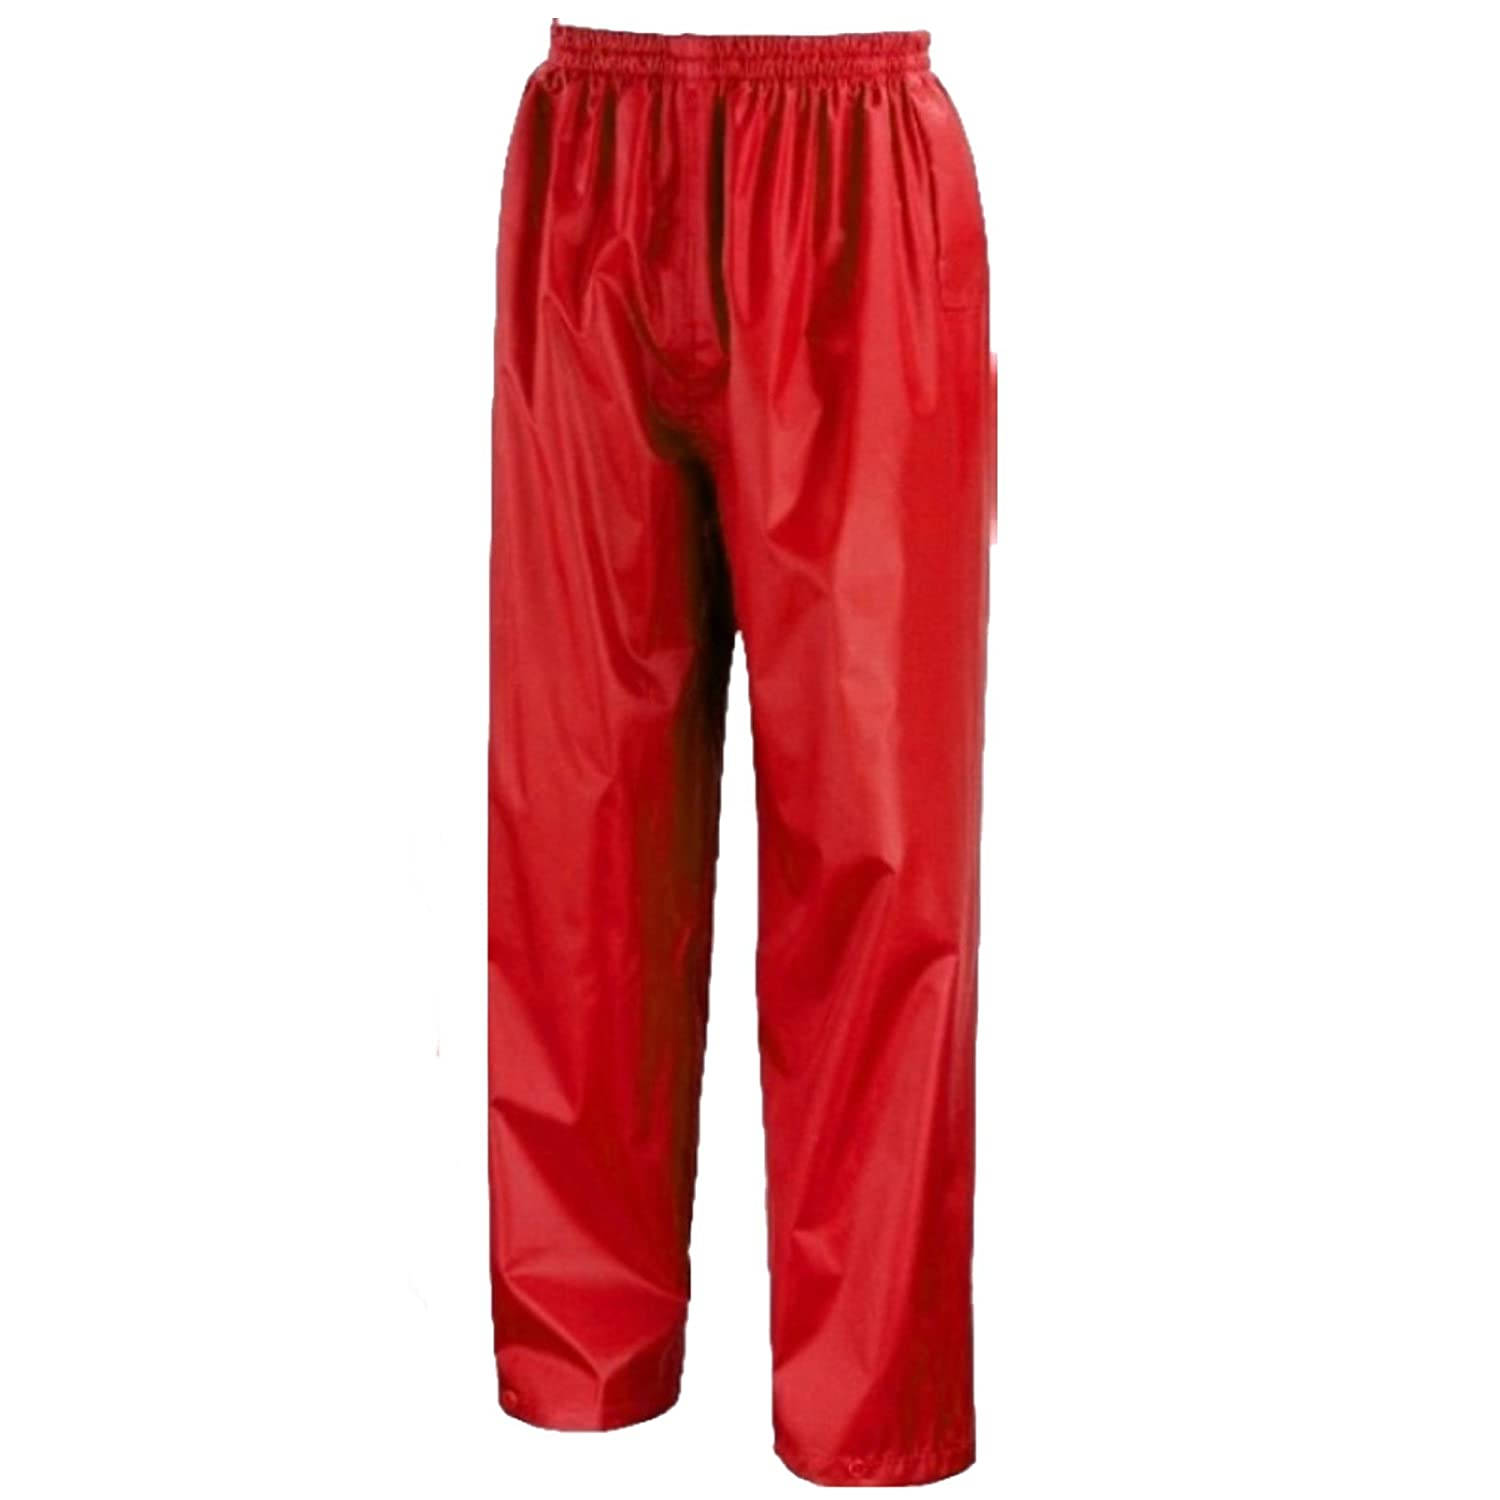 Kids Waterproof Over Trousers In Black, Pink, Red or Royal Blue Childs Childrens Boys Girls